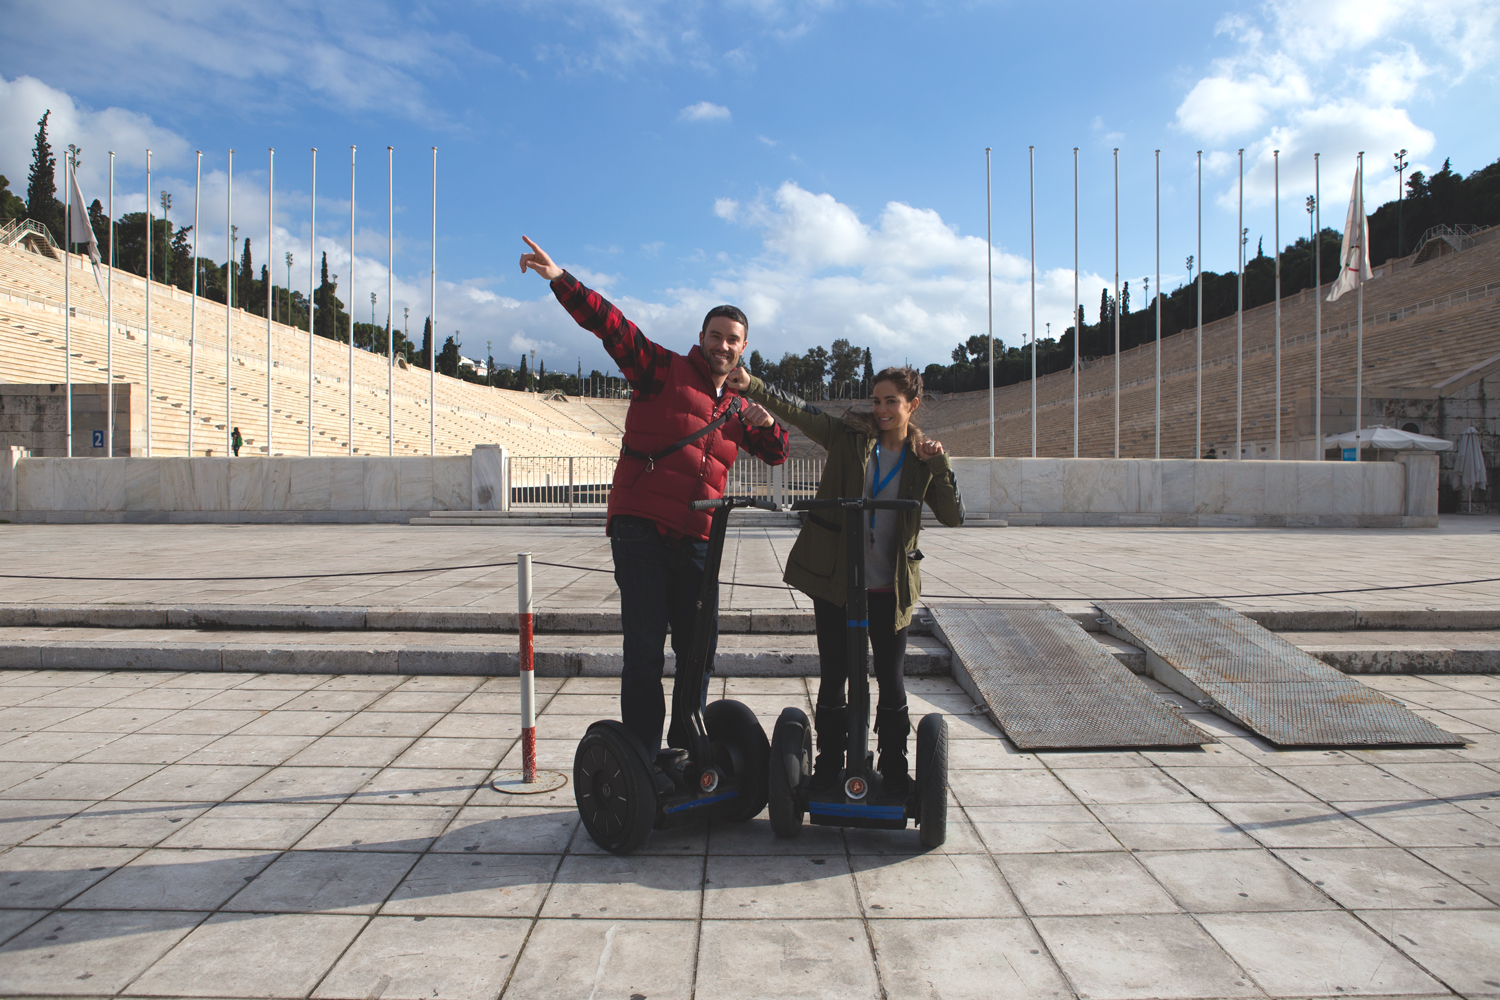 Segway tour stop- at the track of the first Olympic games in 1896